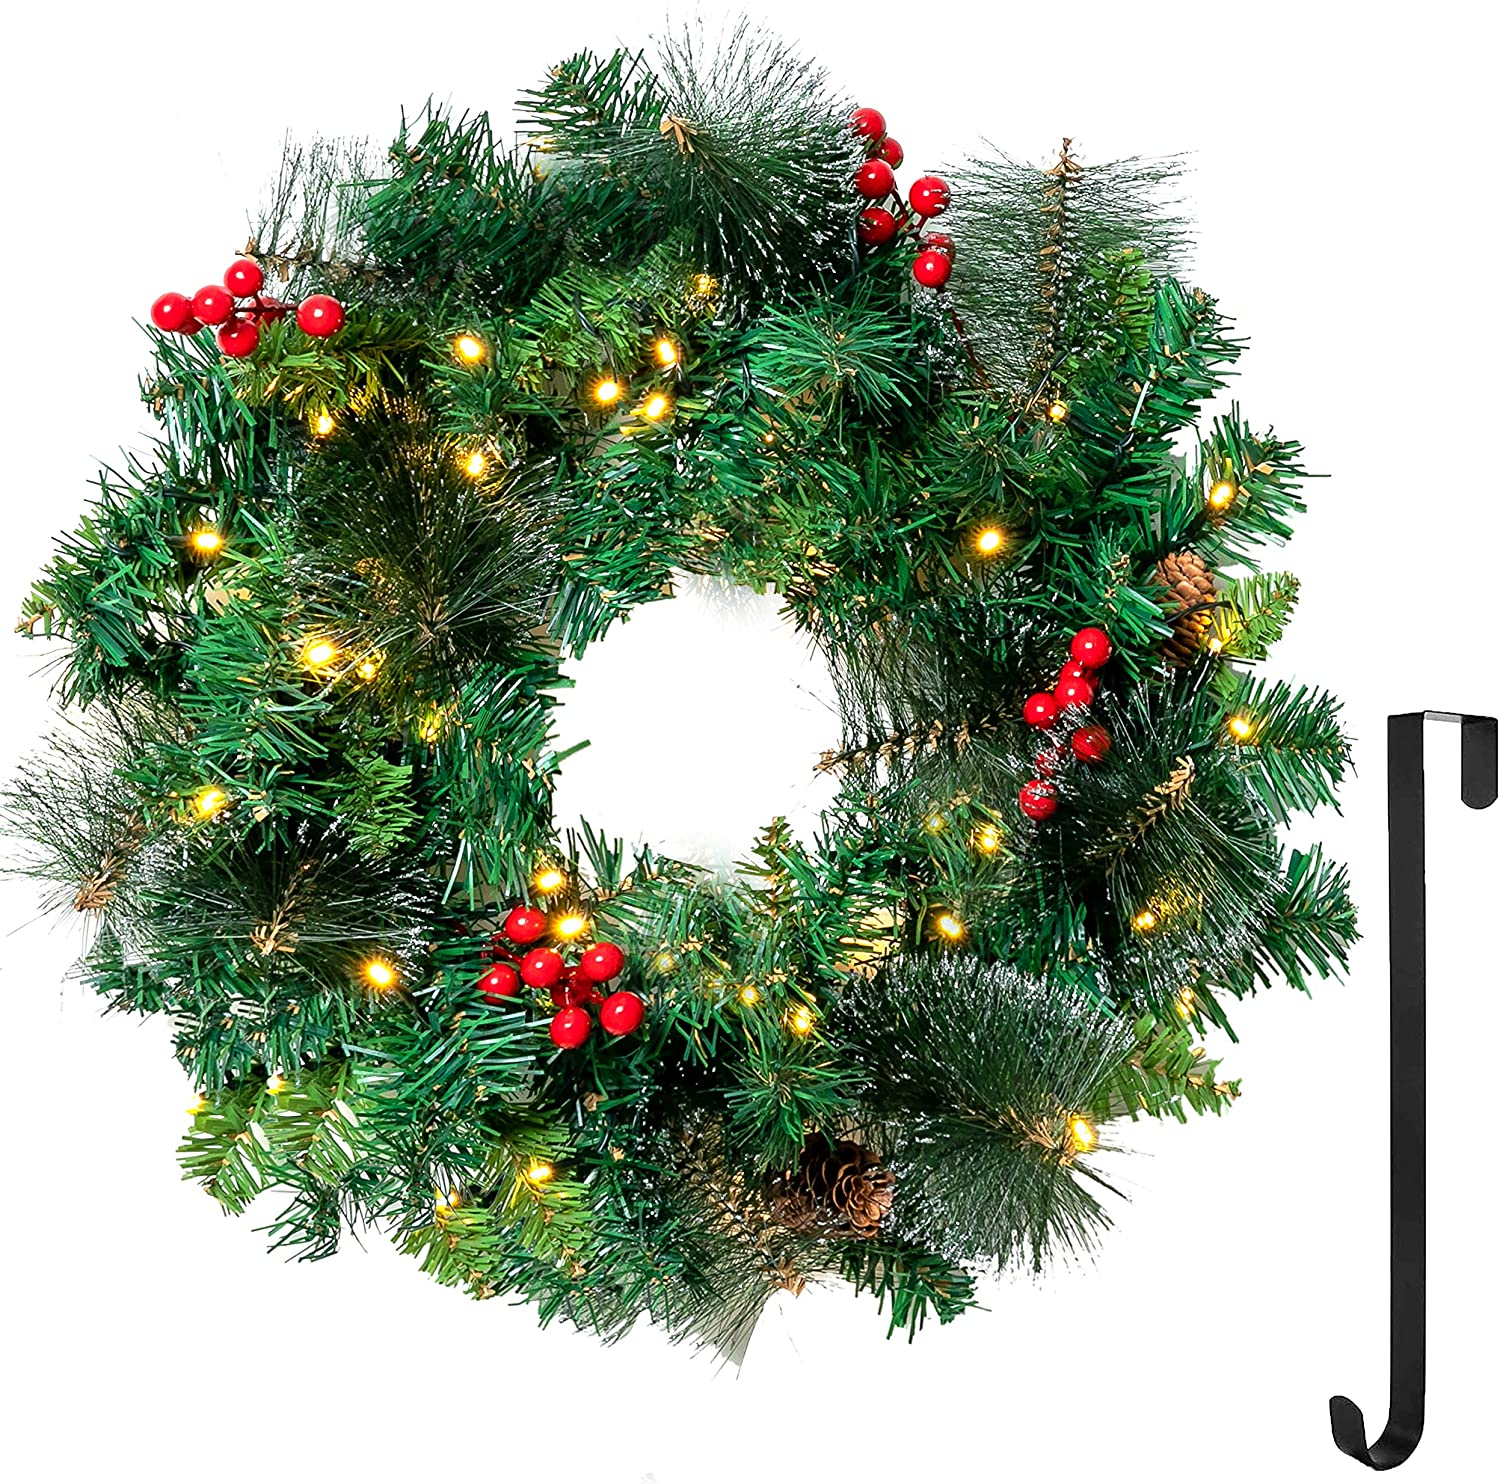 """20"""" Artificial Christmas Wreath Prelit with 15"""" Hanger, Decorated with 50 LED Lights, Red Berries, Pine Cones & Glitter Pine Needles for Front Door Wall Christmas Decorations (Battery Operated)"""